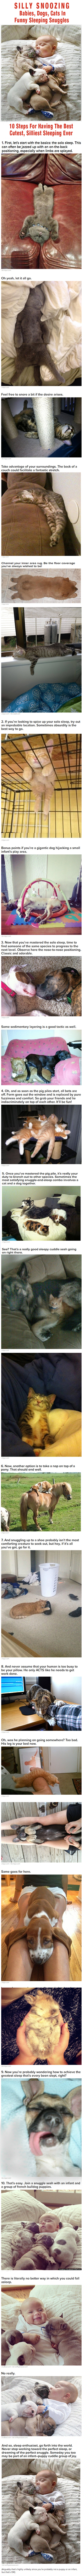 10 Steps For Achieving The Best, Cutest, Silliest Sleeping Ever - Babies,-Dogs,-Cats-sleeping-together - very funny photo essay